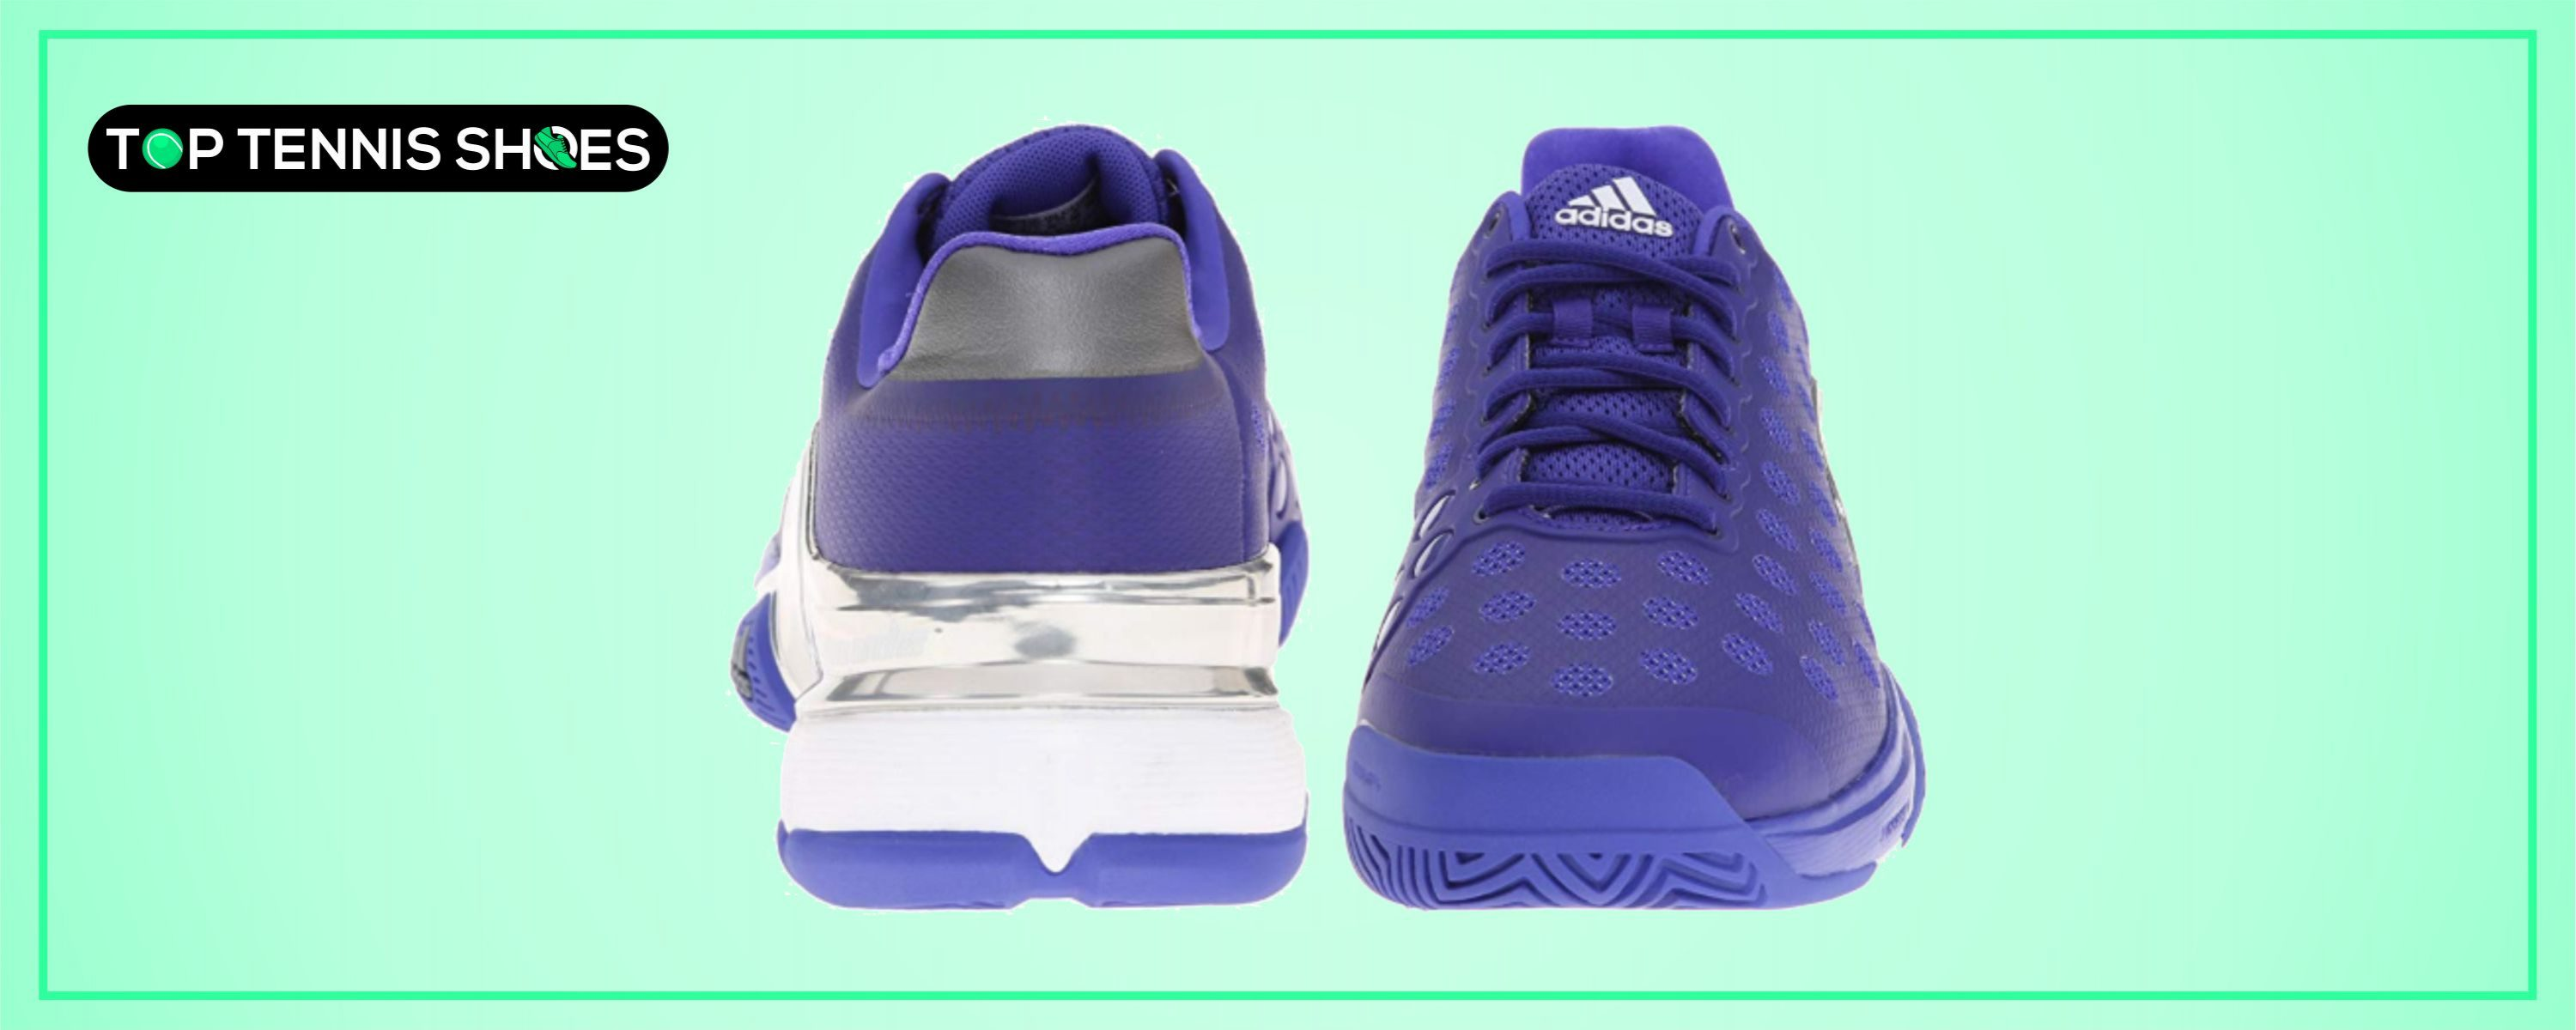 Best Tennis Sneakers 2019